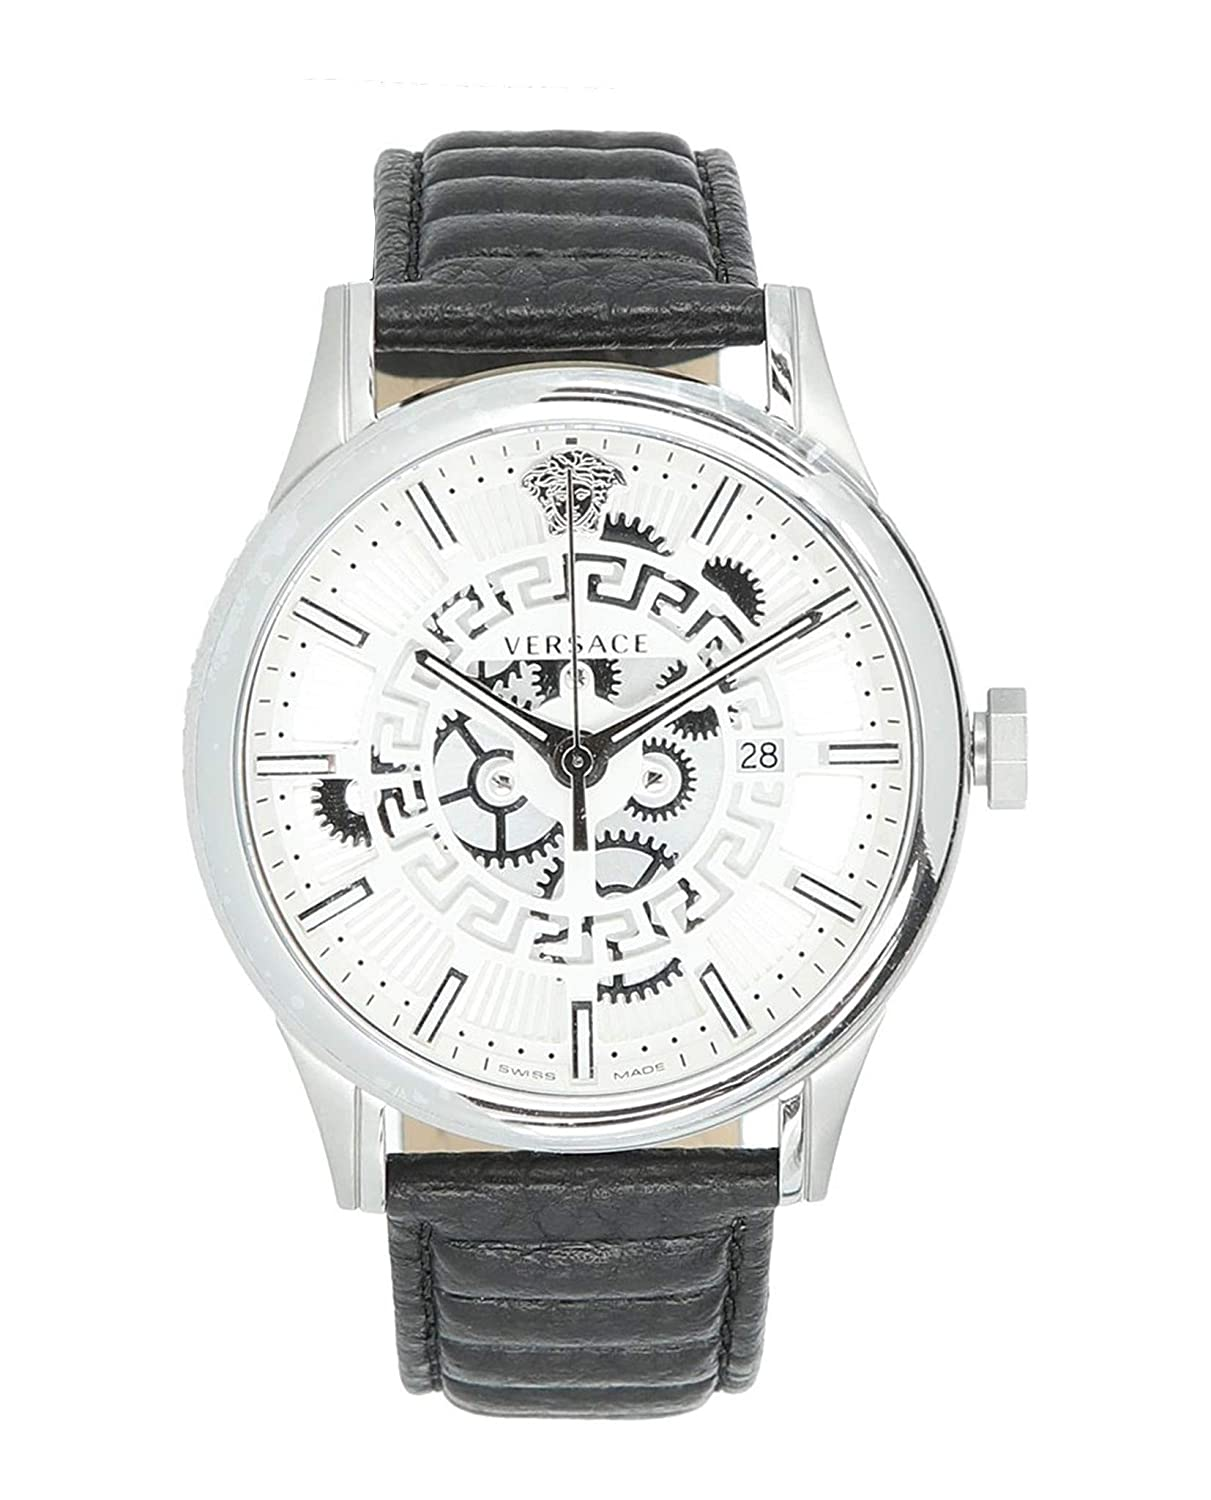 6e15c0db30 Amazon.com: Versace Mens Aiakos Watch VEBS00118: Watches